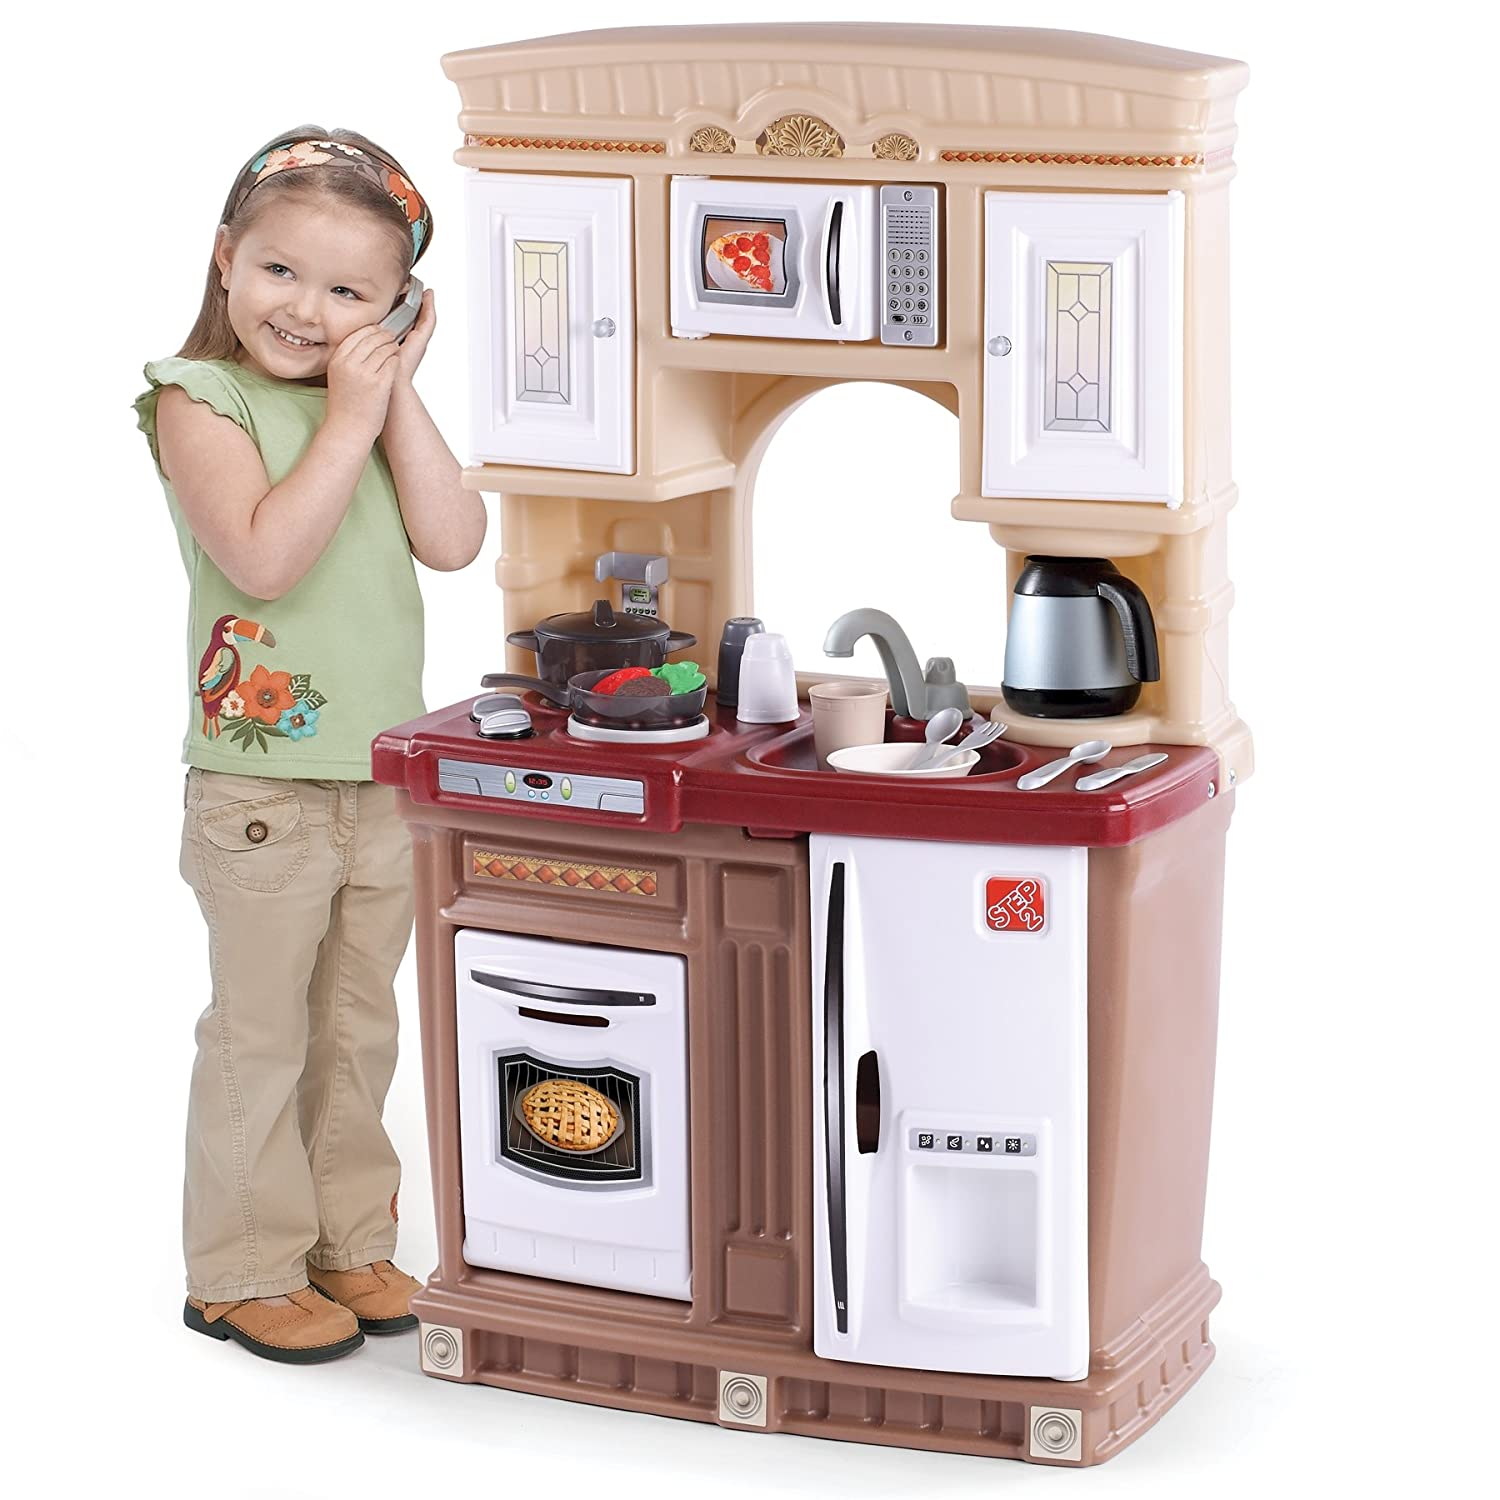 Amazon.com: Step2 Lifestyle Fresh Accents Kitchen: Toys & Games